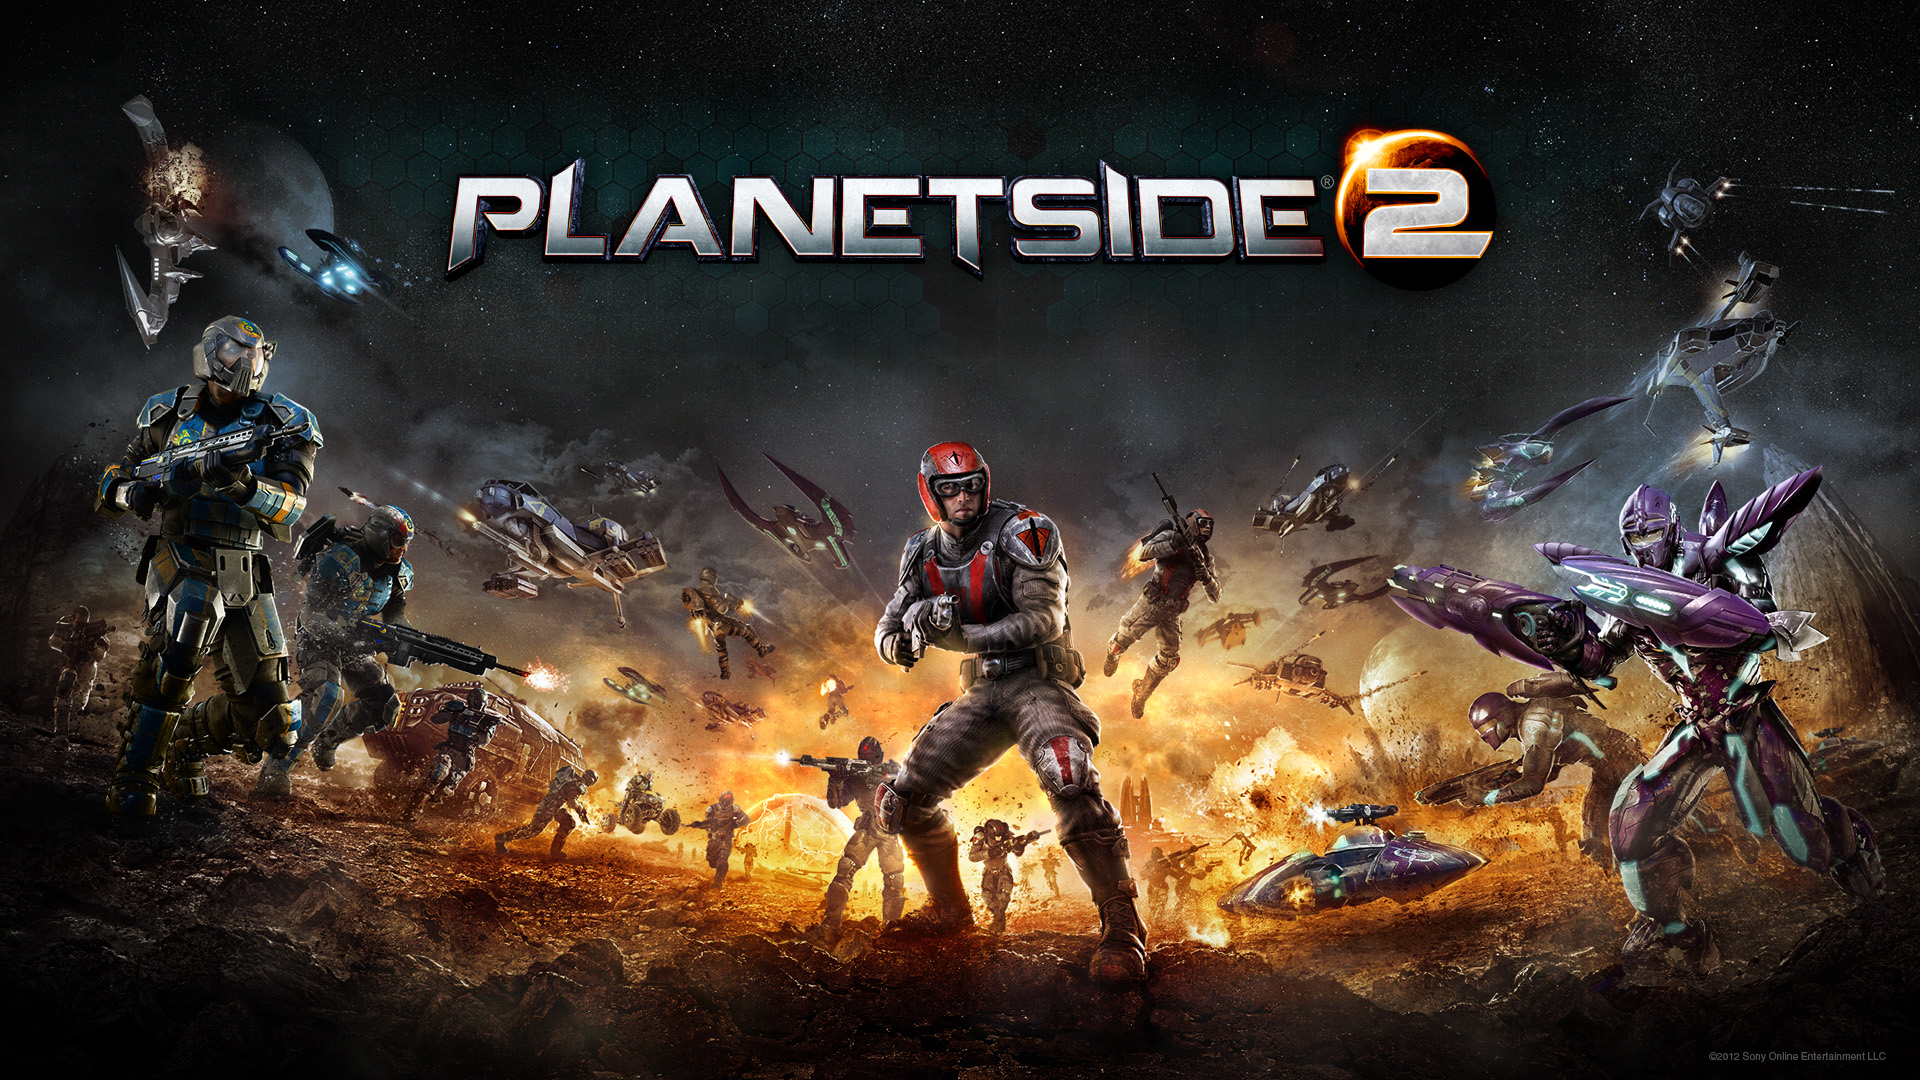 PlanetSide 2 has only recently become profitable for SOE